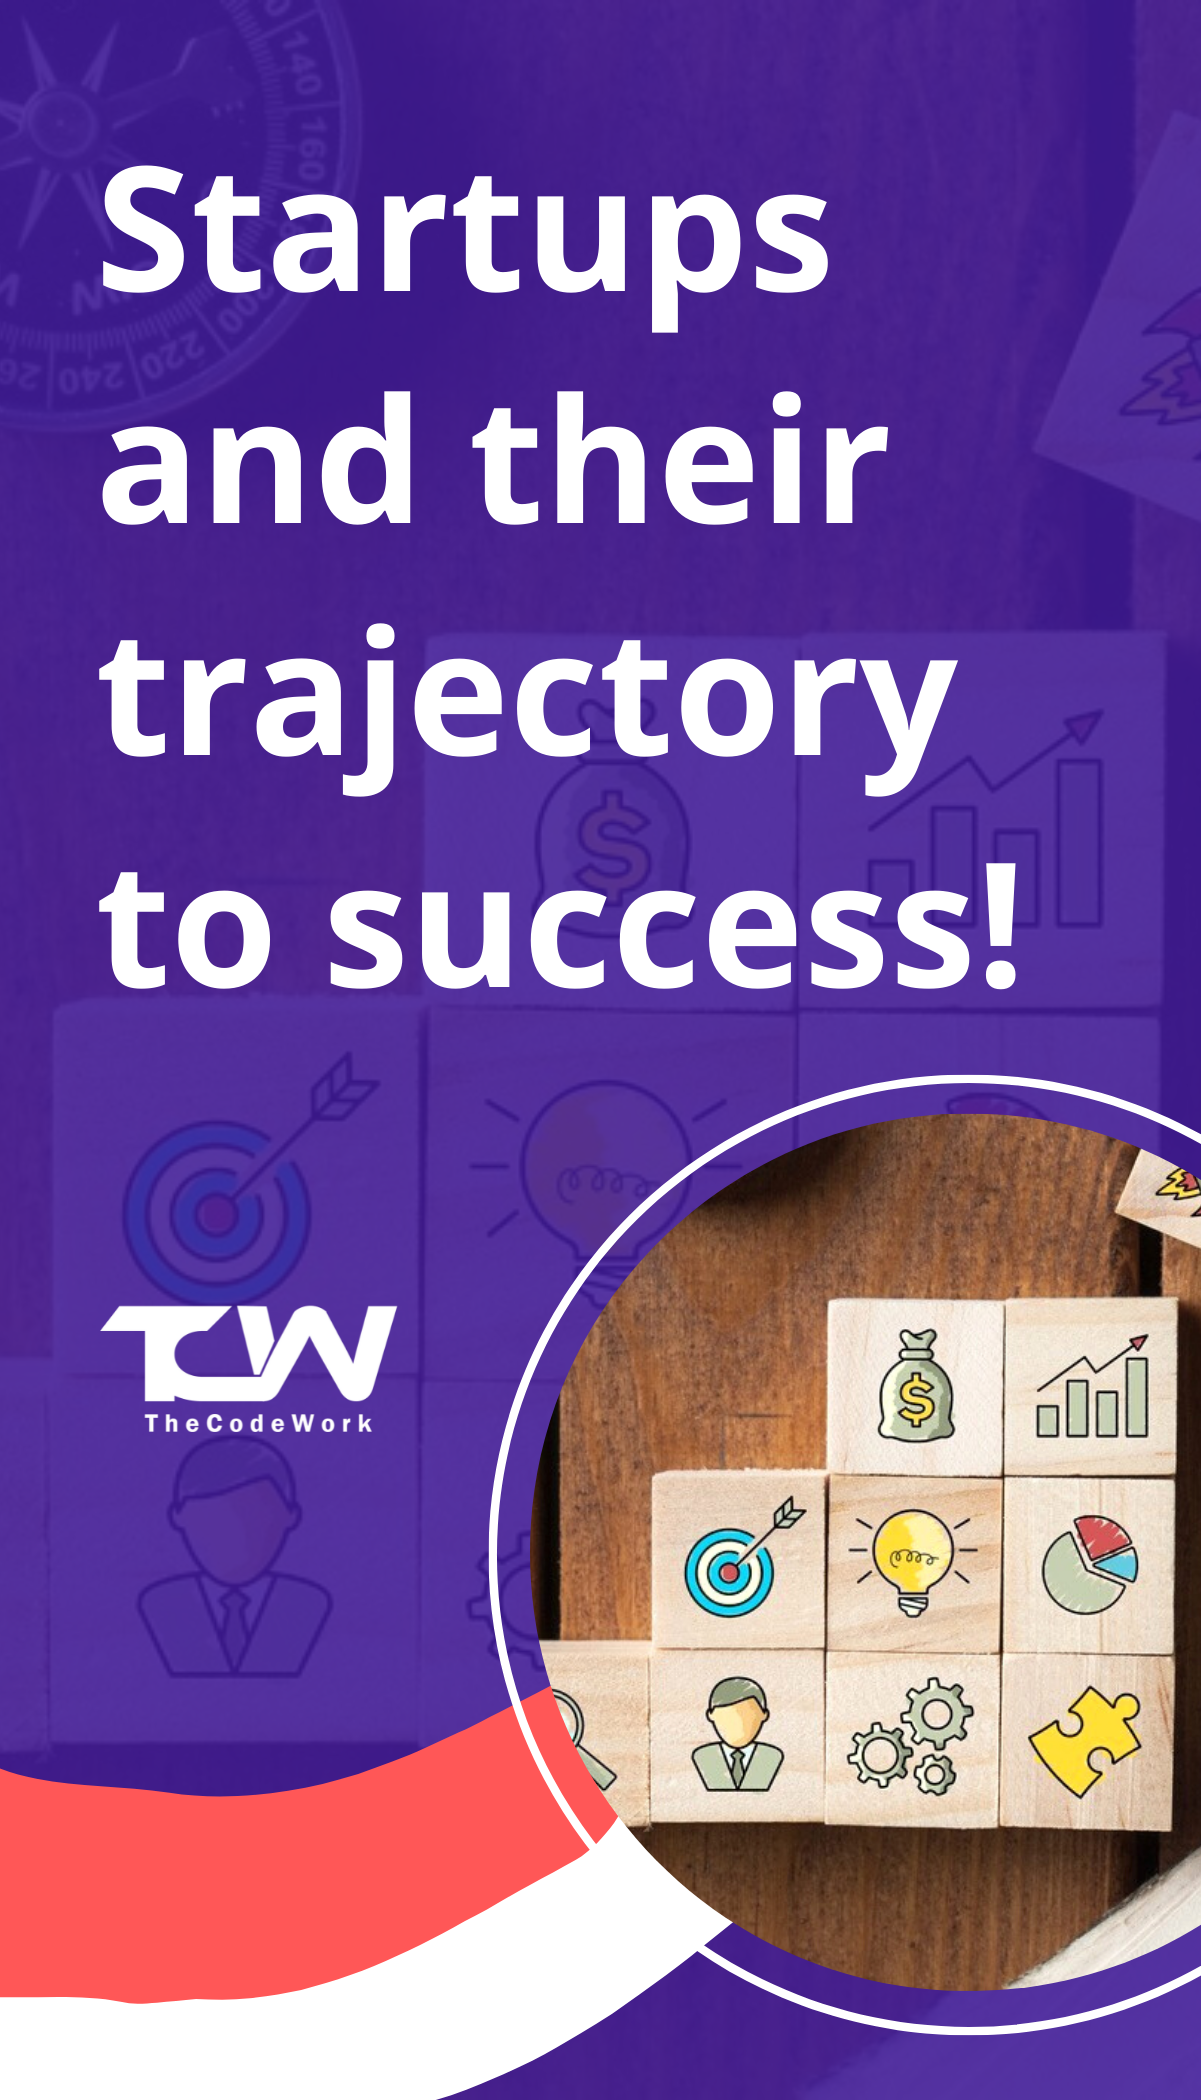 Startups and their trajectory to success!